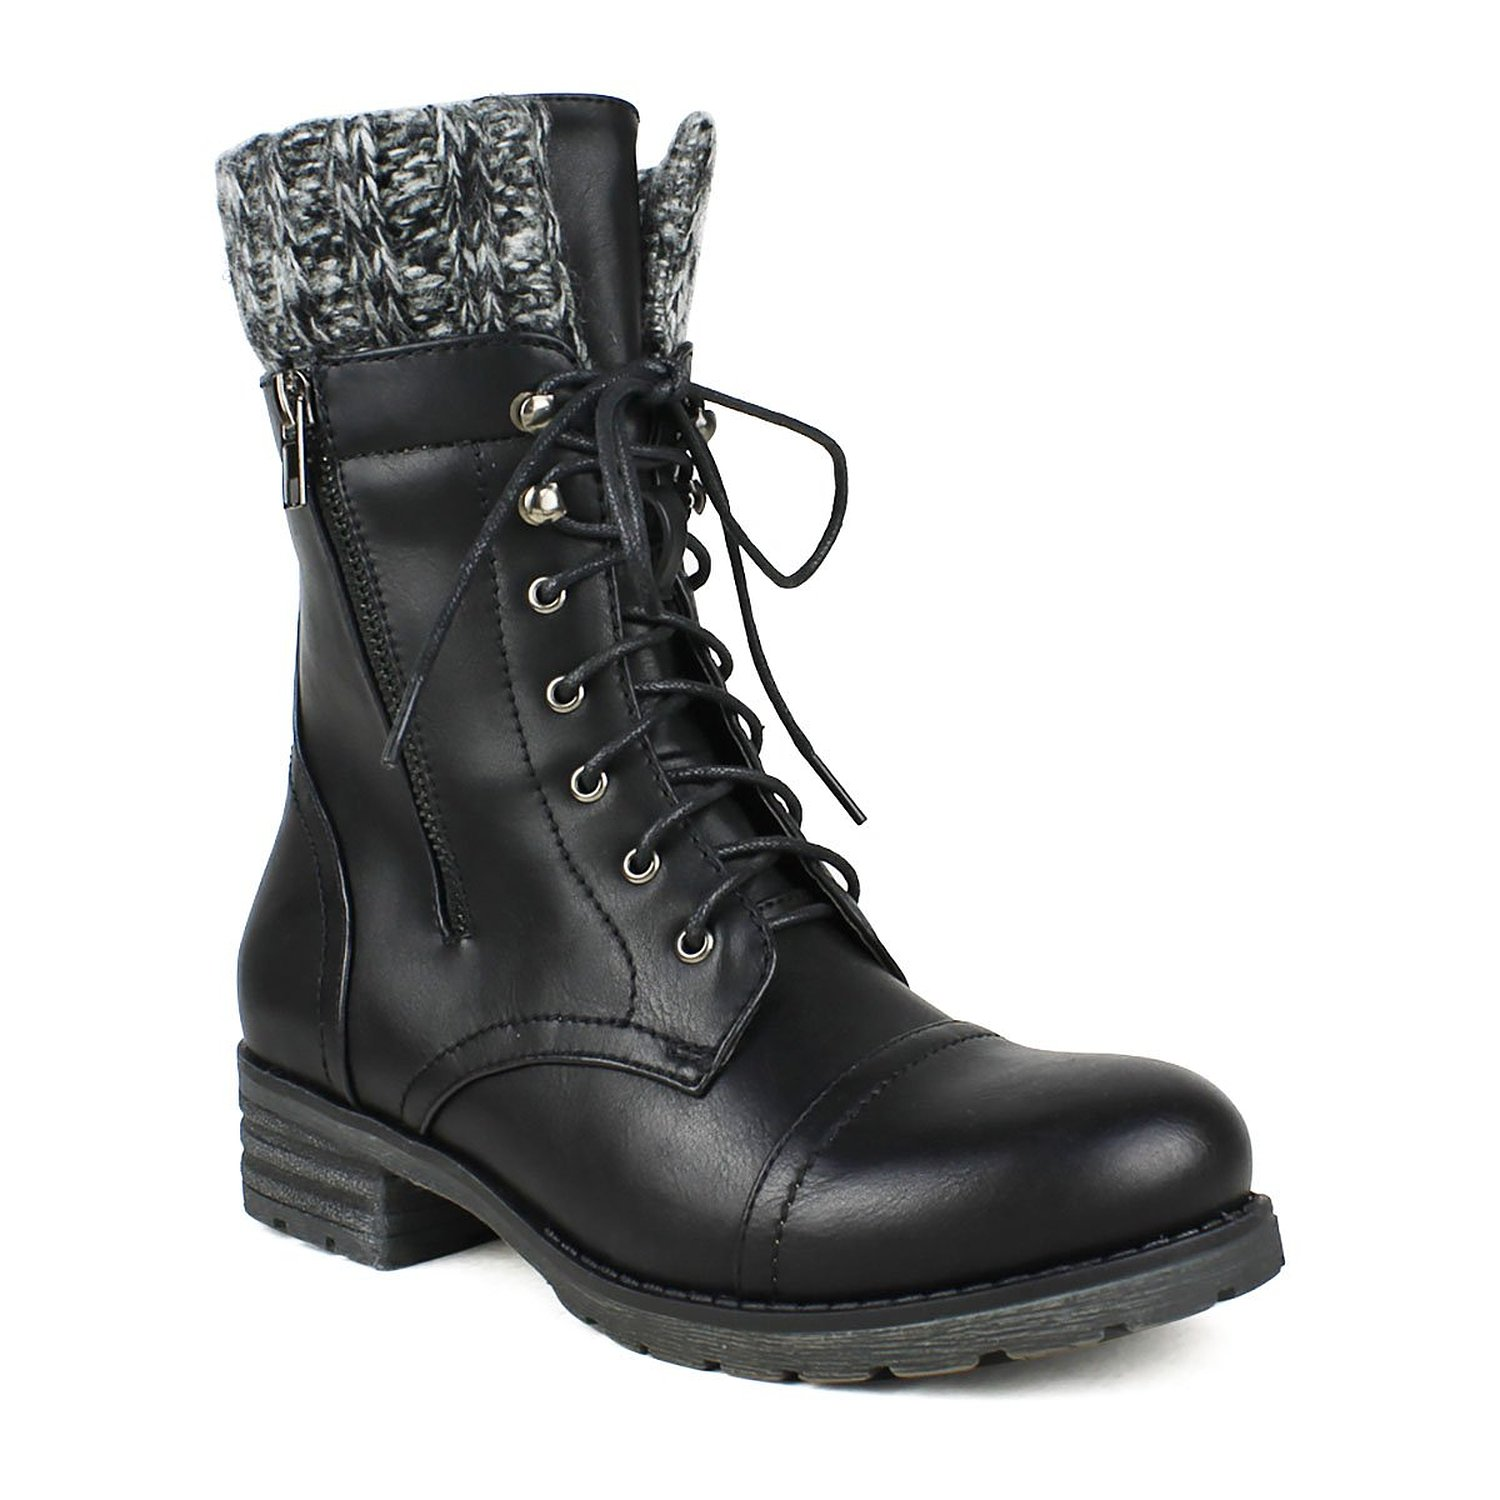 cozy sweater cuffed combat lace up vegan leather boots ebay